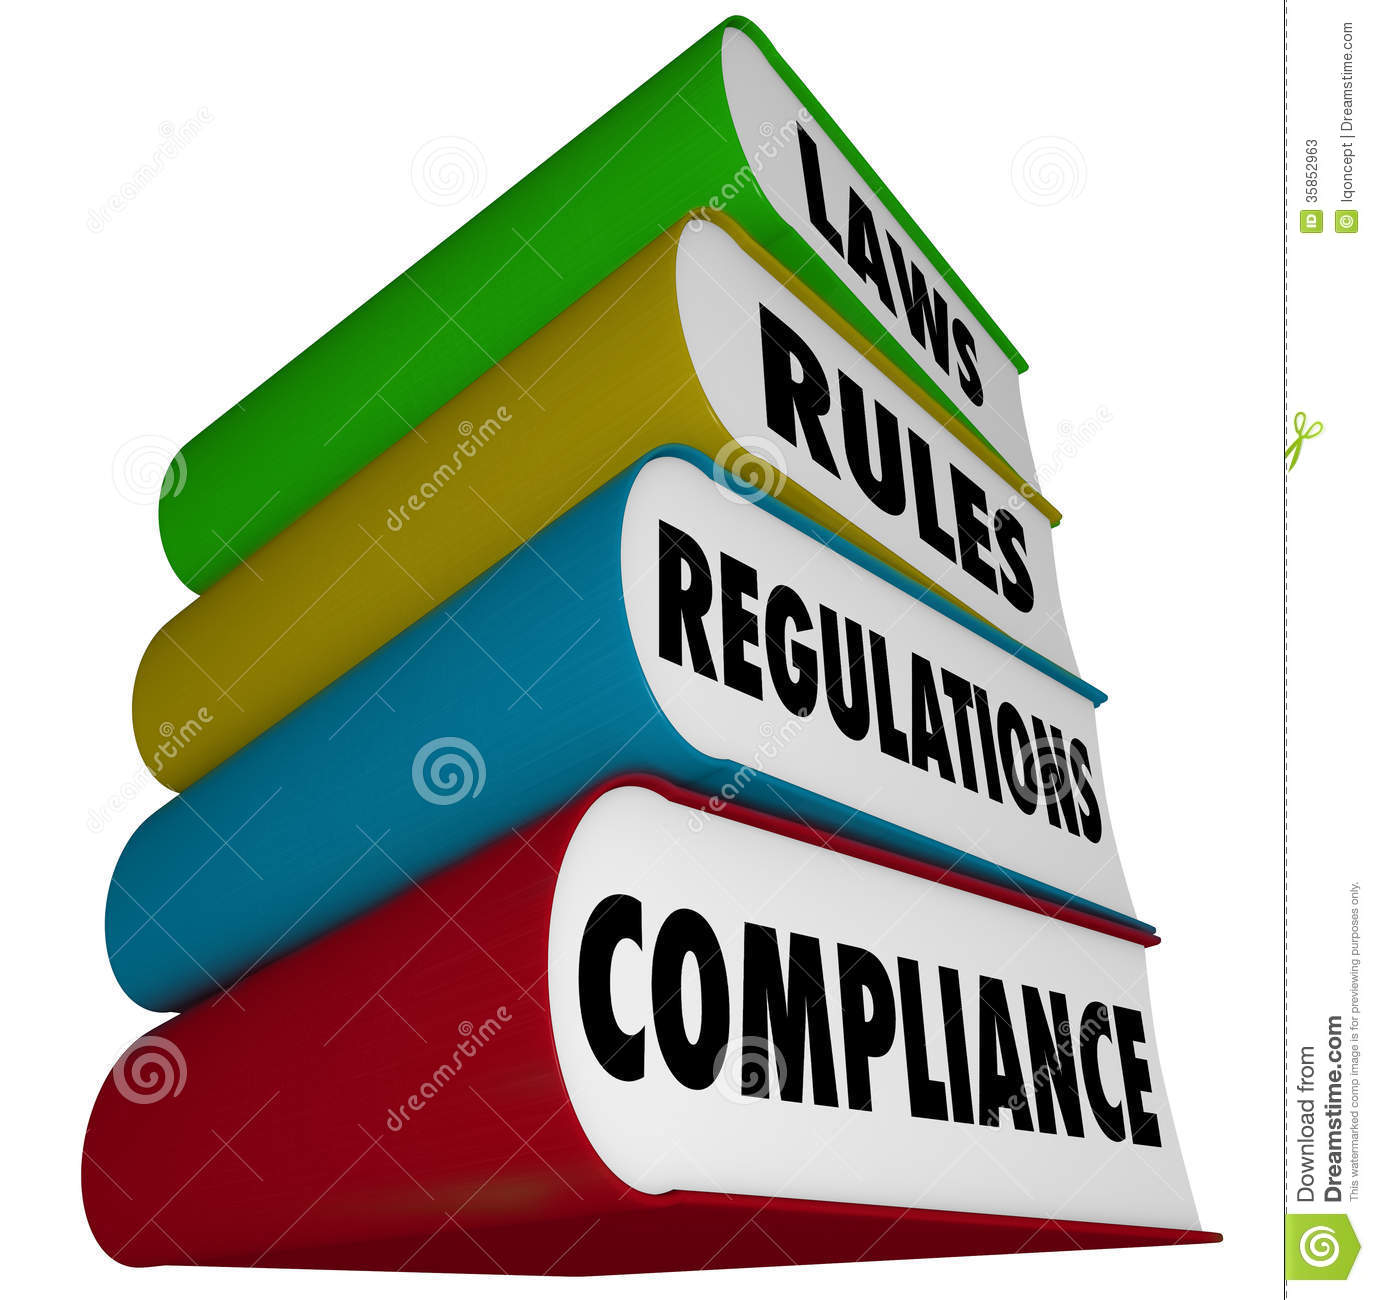 Compliance clipart free freeuse download Compliance Clipart | Free download best Compliance Clipart on ... freeuse download